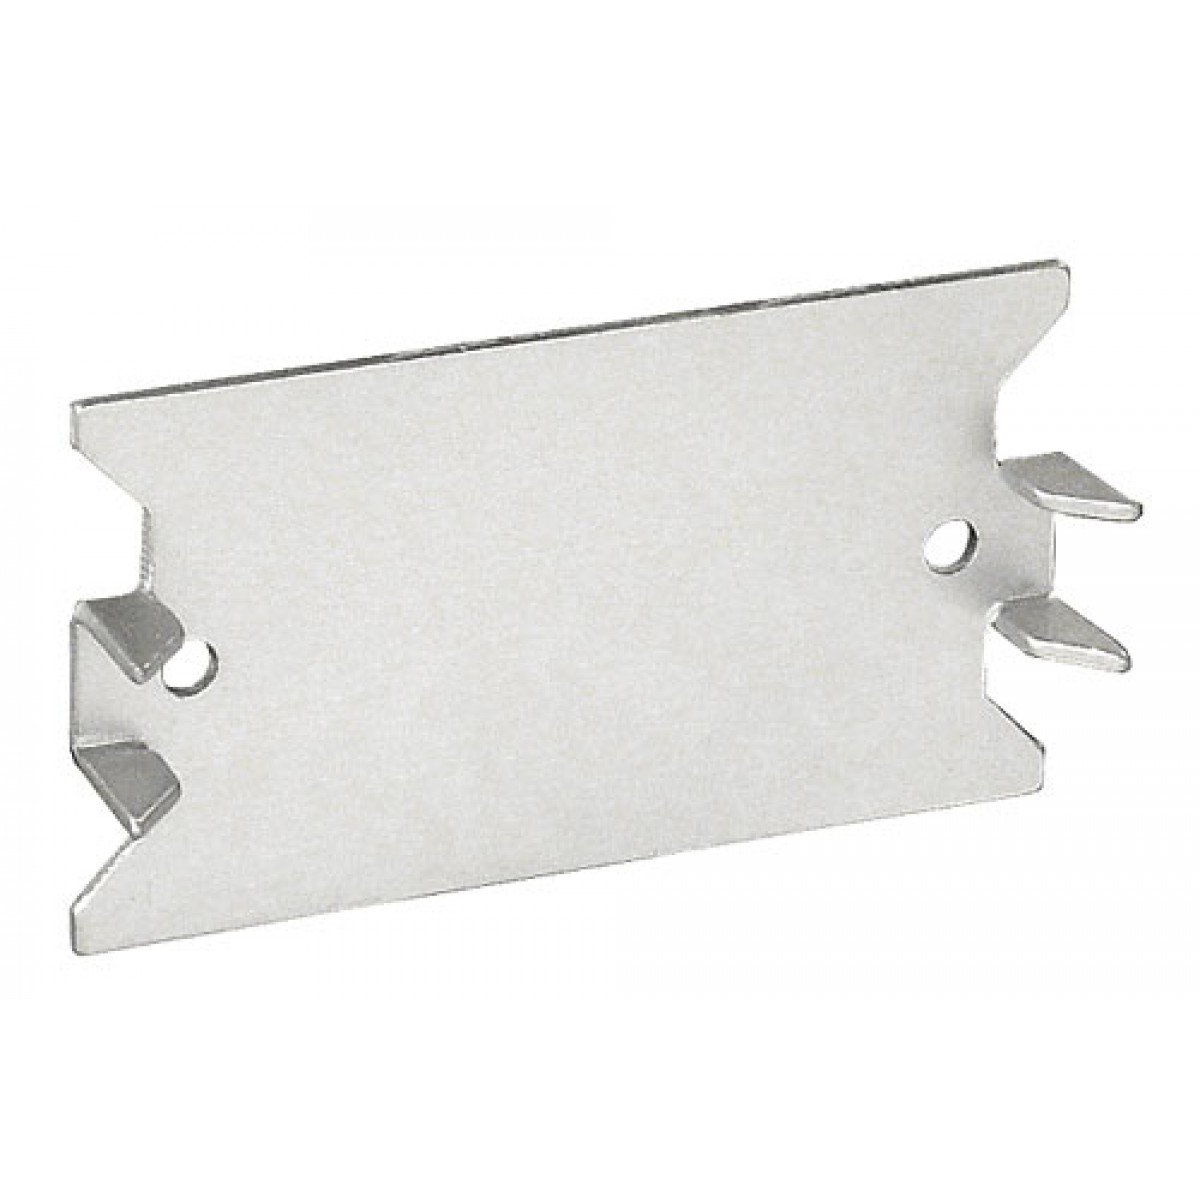 12 Pcs, 3 In. Safety Plate for Wood Stud, 16 Gauge Steel Install Quickly & Protect Wire, Cable & Pipe